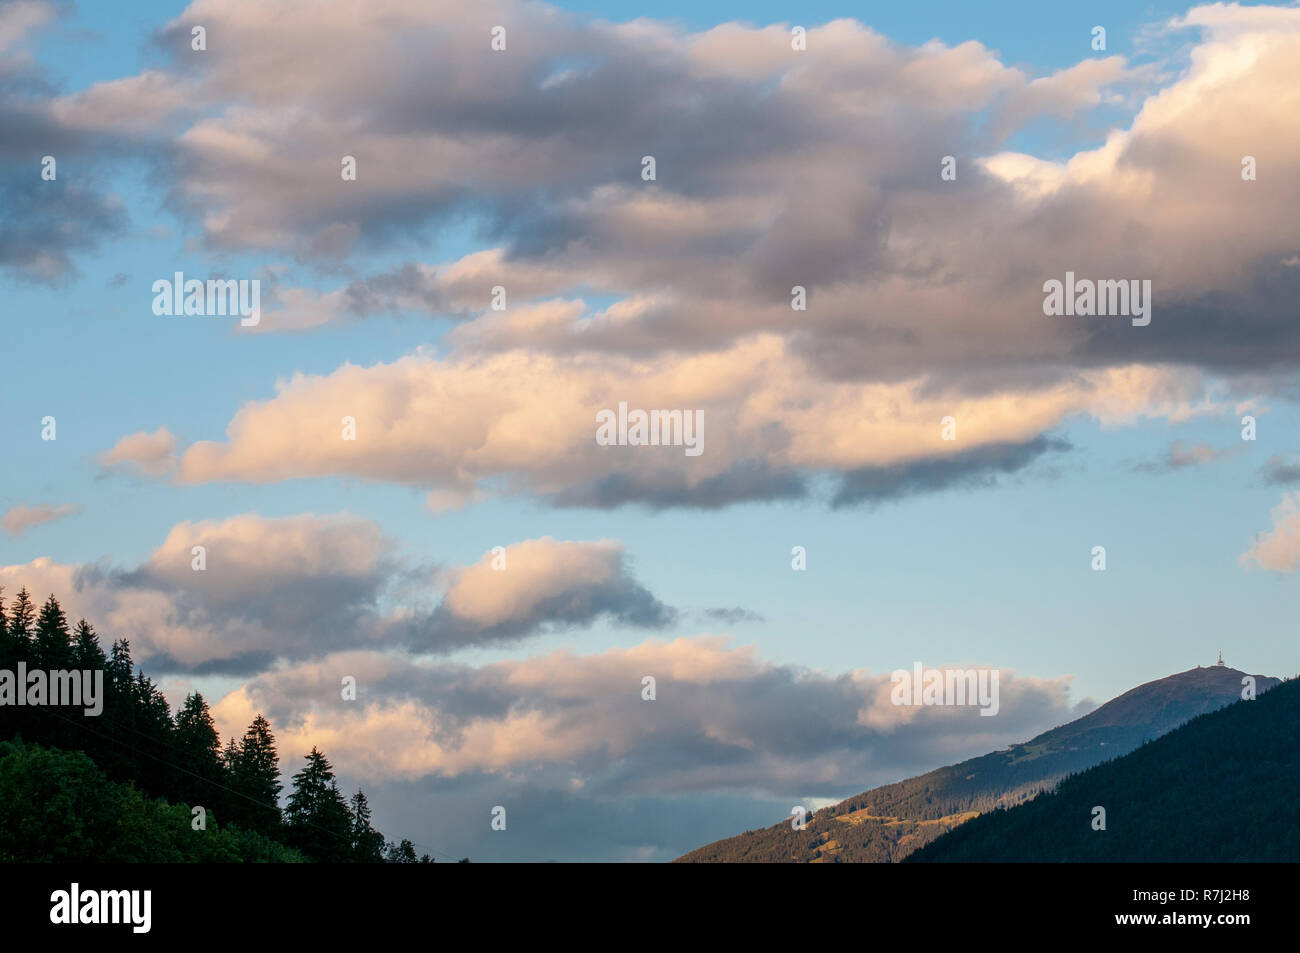 Cumulus Cloud formations with blue sky background. Photographed in Stubai, Tyrol, Austria in September - Stock Image